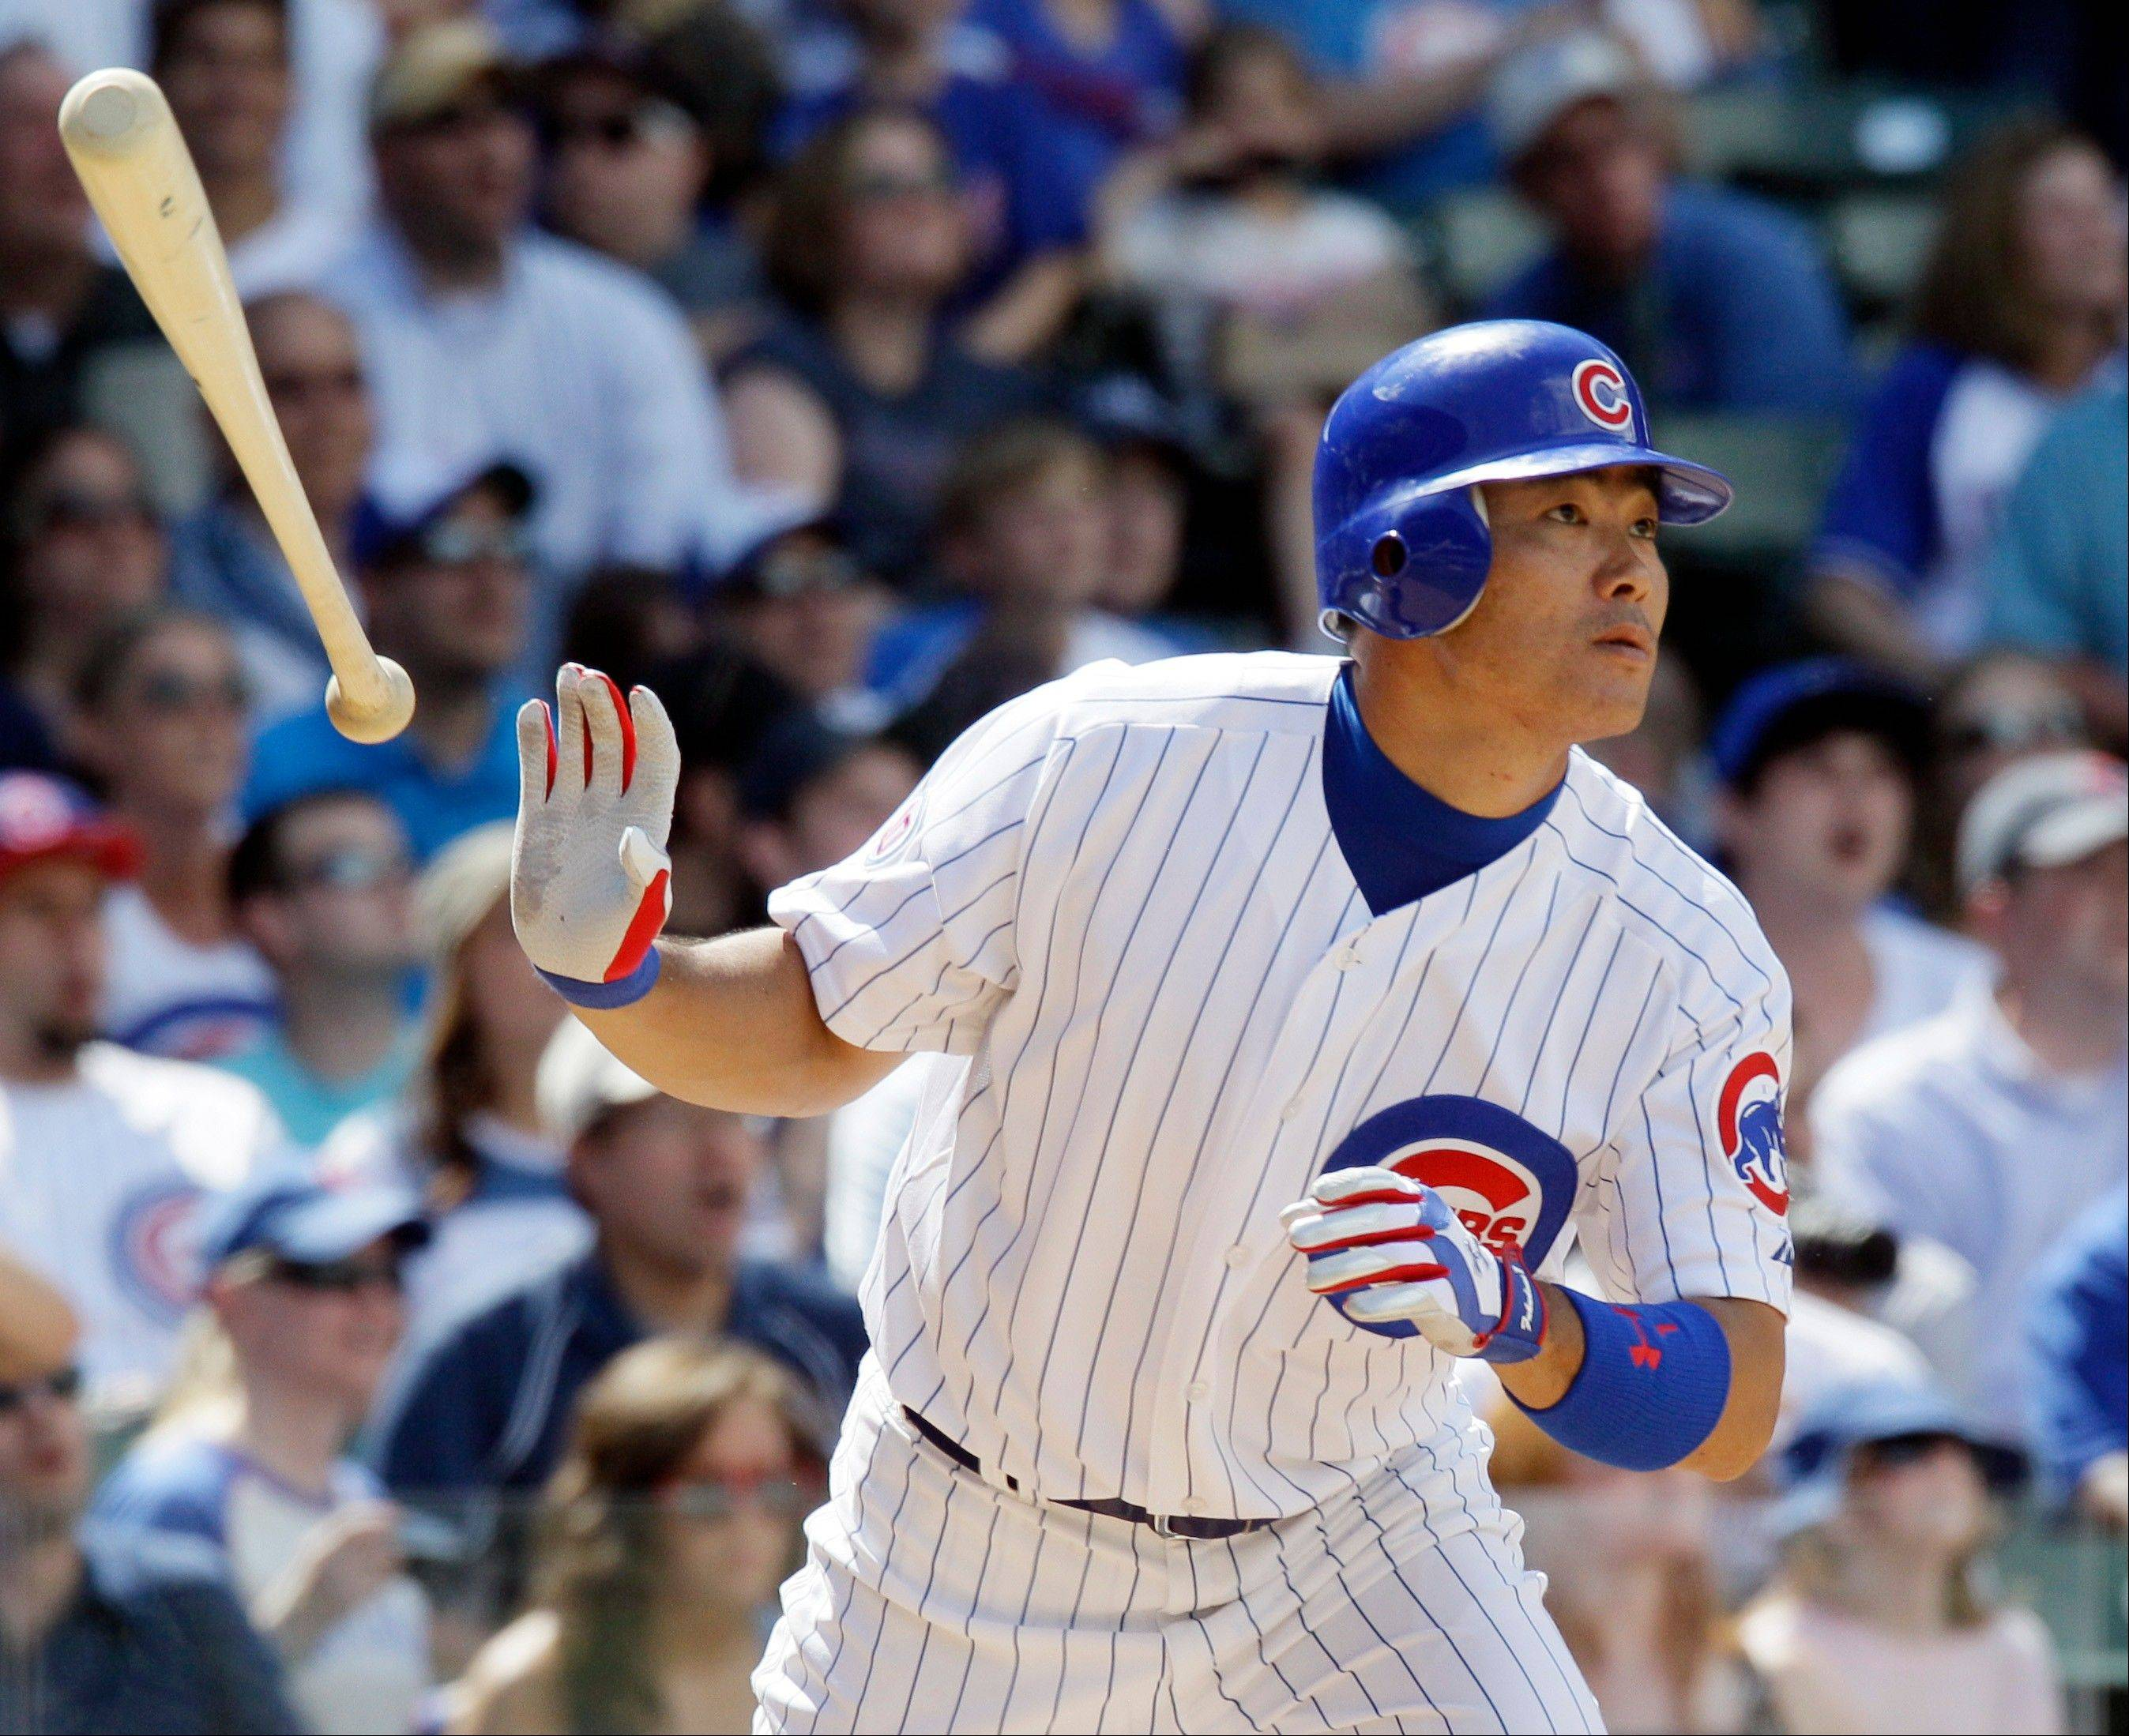 Kosuke Fukudome watches after hitting a three-run home run against the Milwaukee Brewers during the sixth inning.